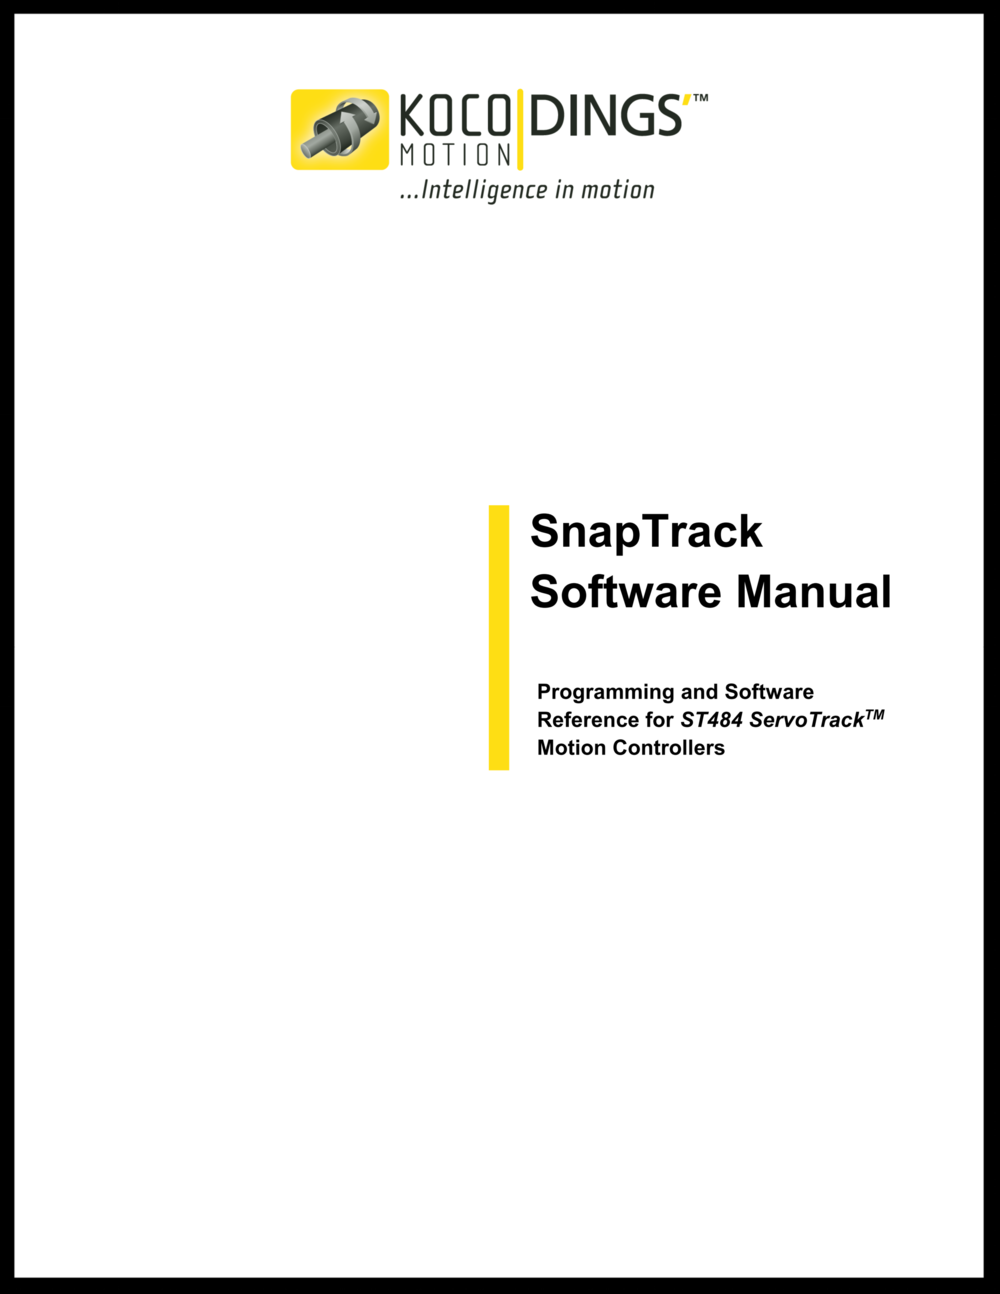 SnapTrack Software Manual